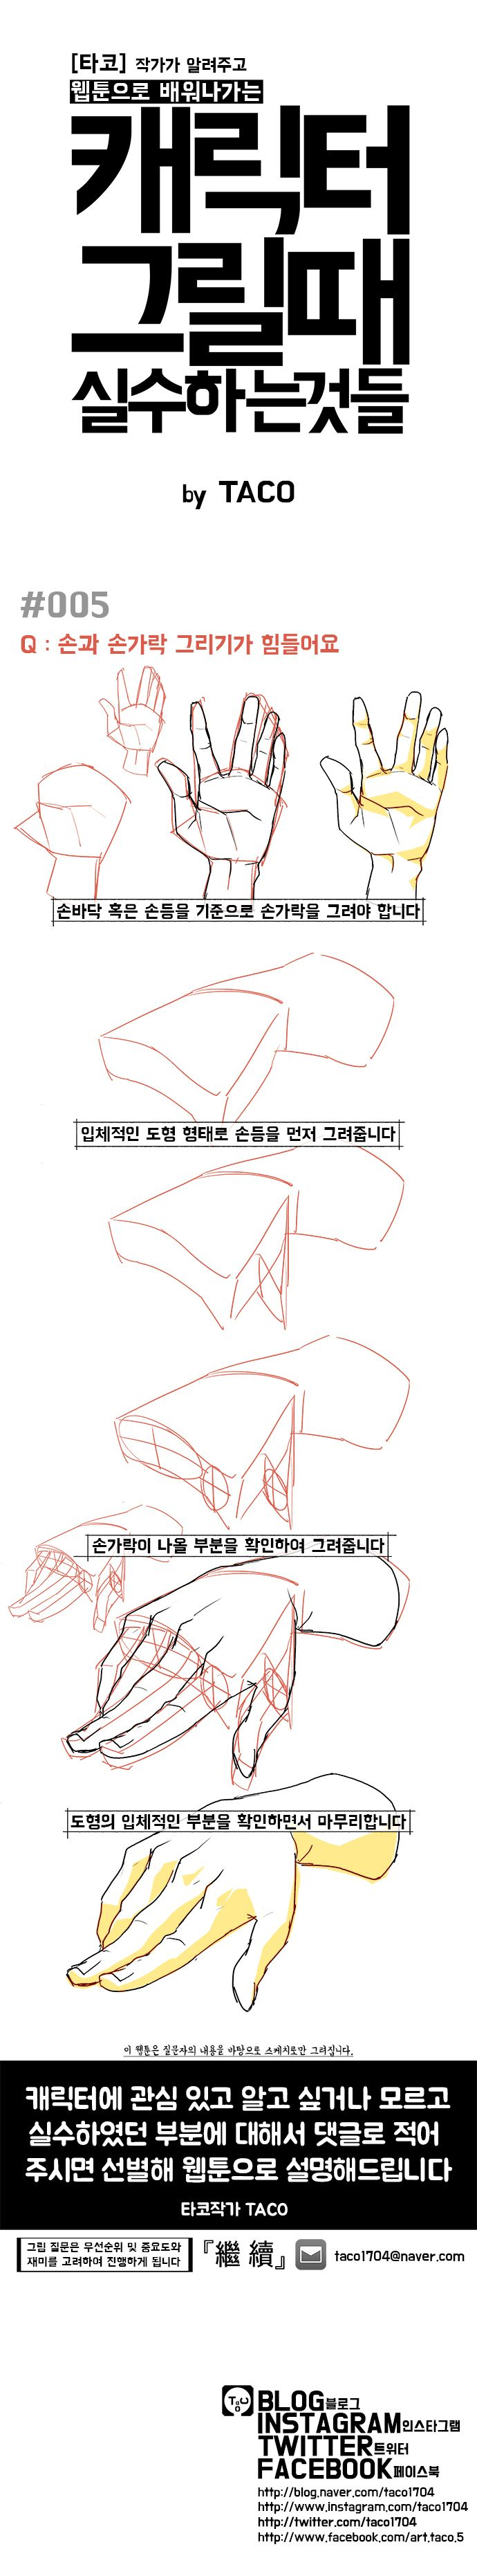 comic content - How to draw a hand step by step - human anatomy ...